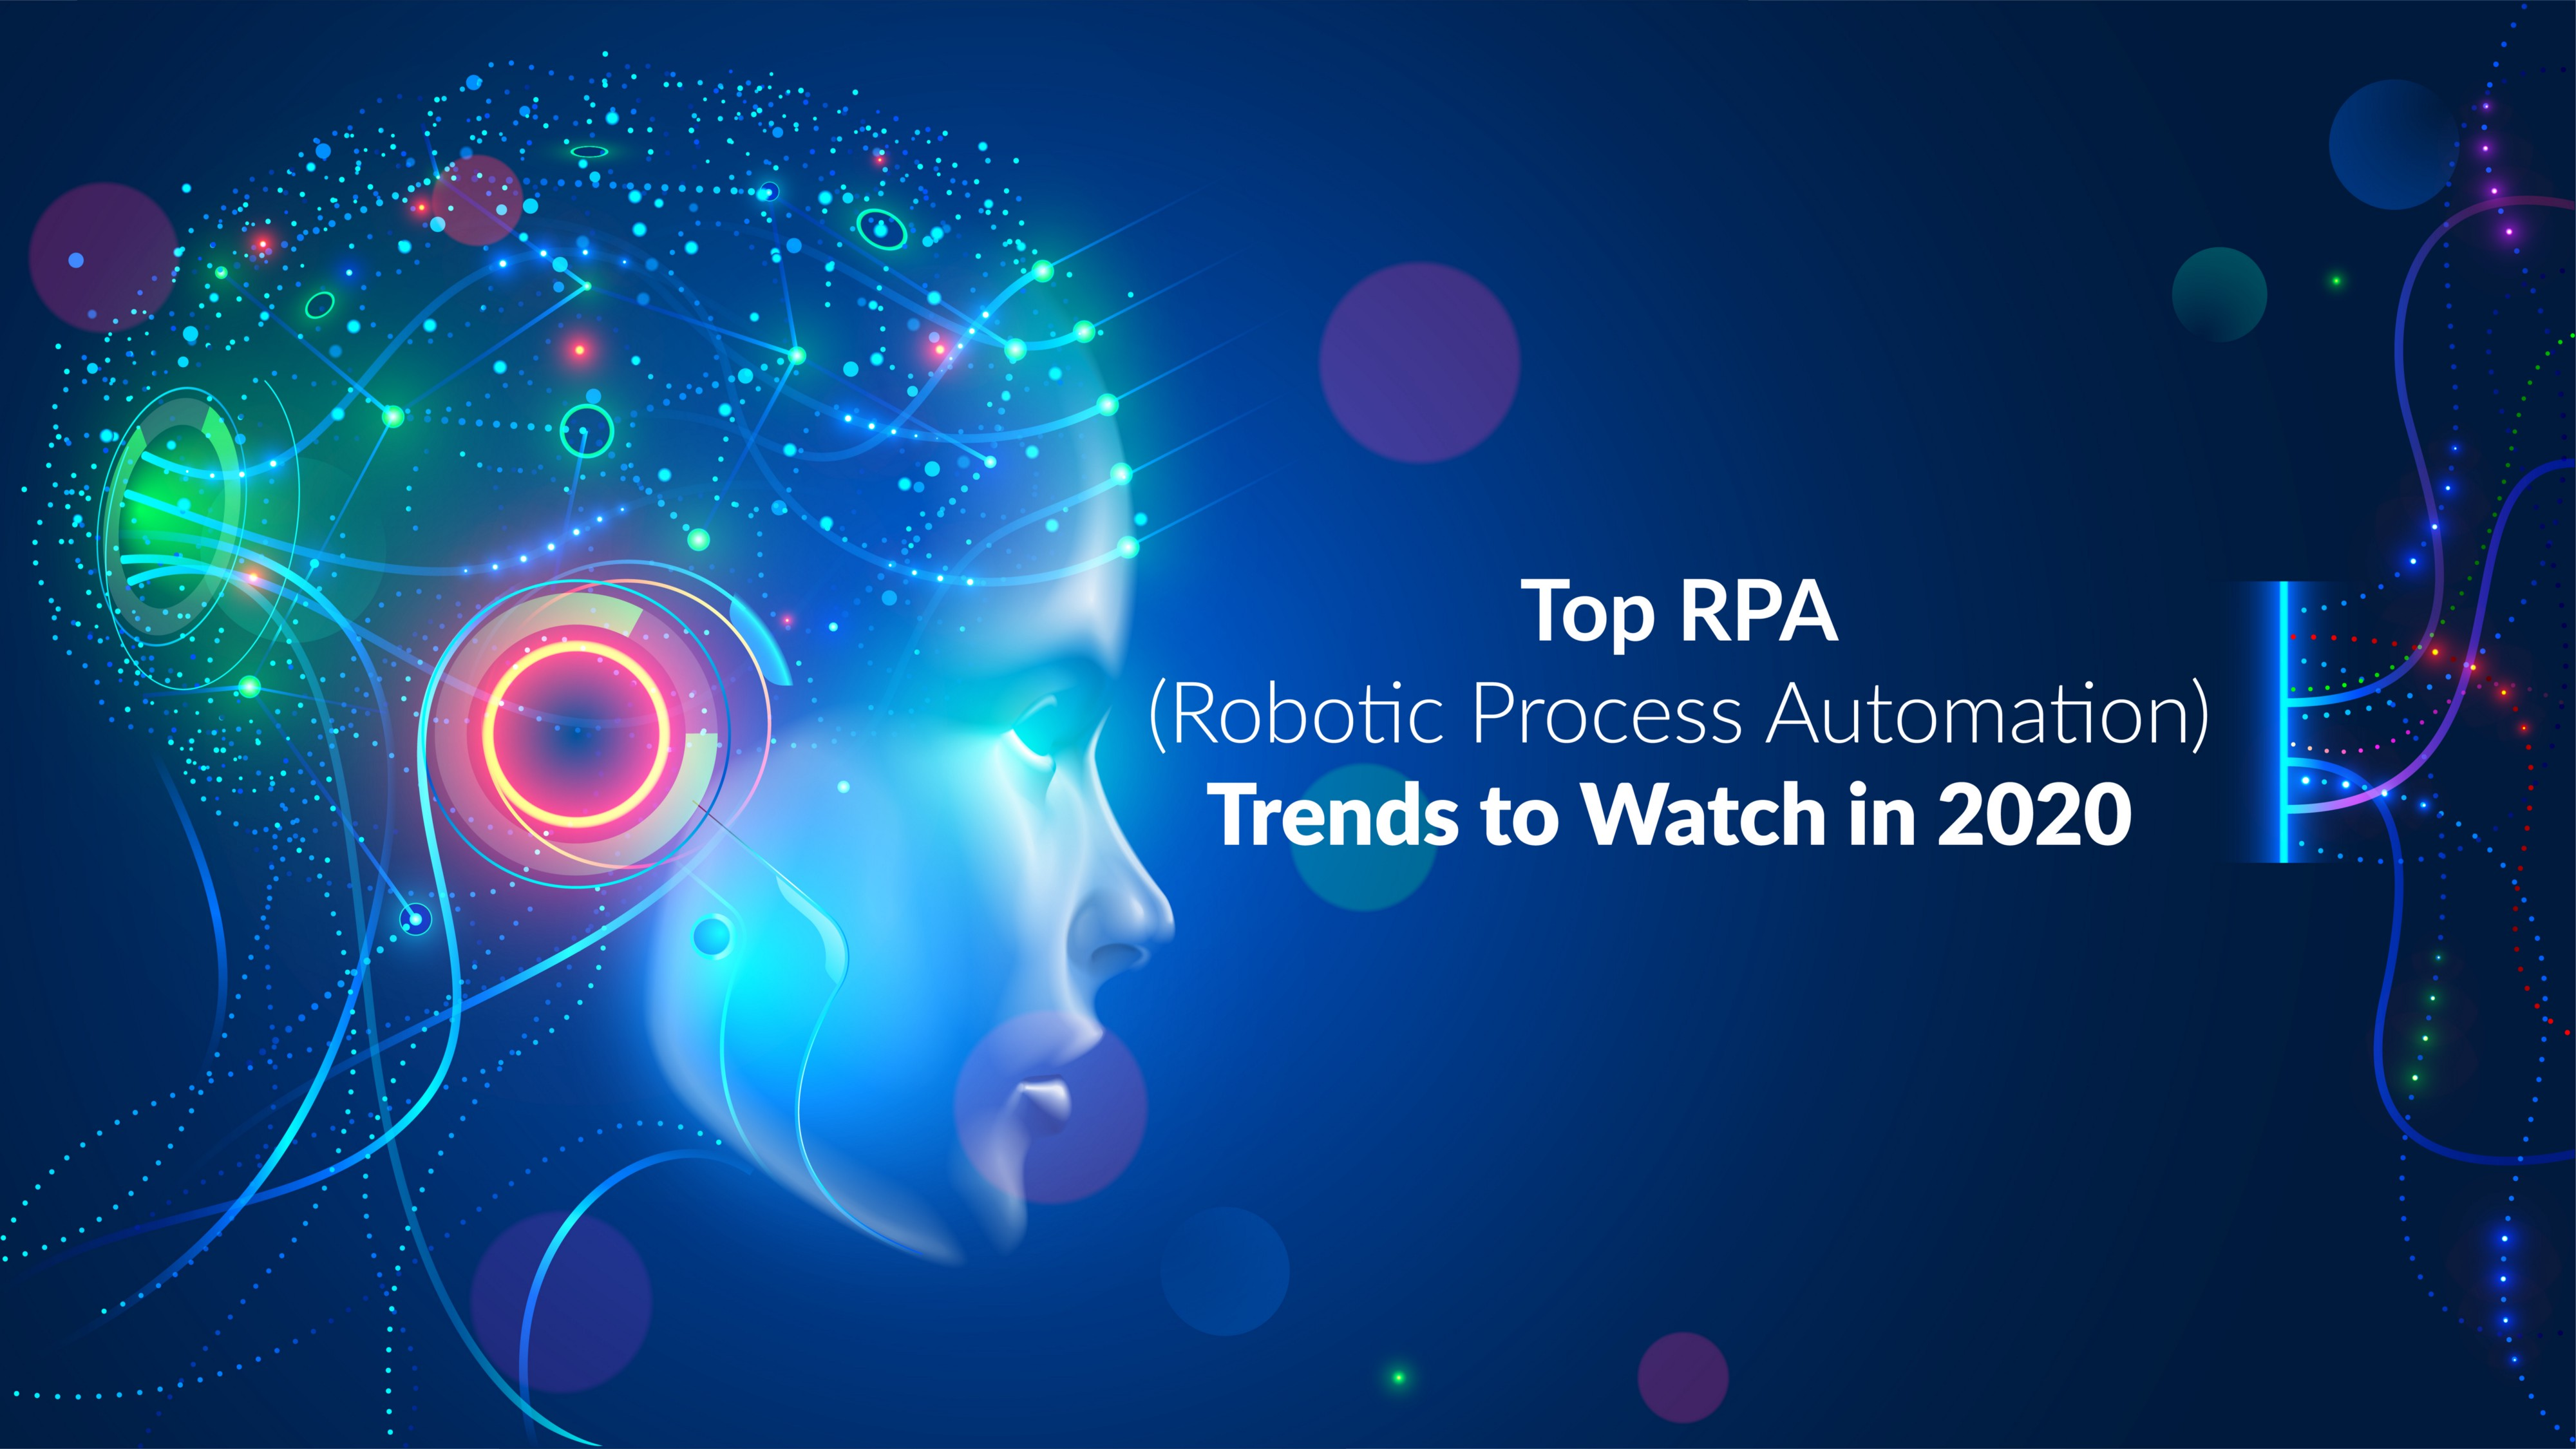 Top Robotic Process Automation Trends To Watch In 2020